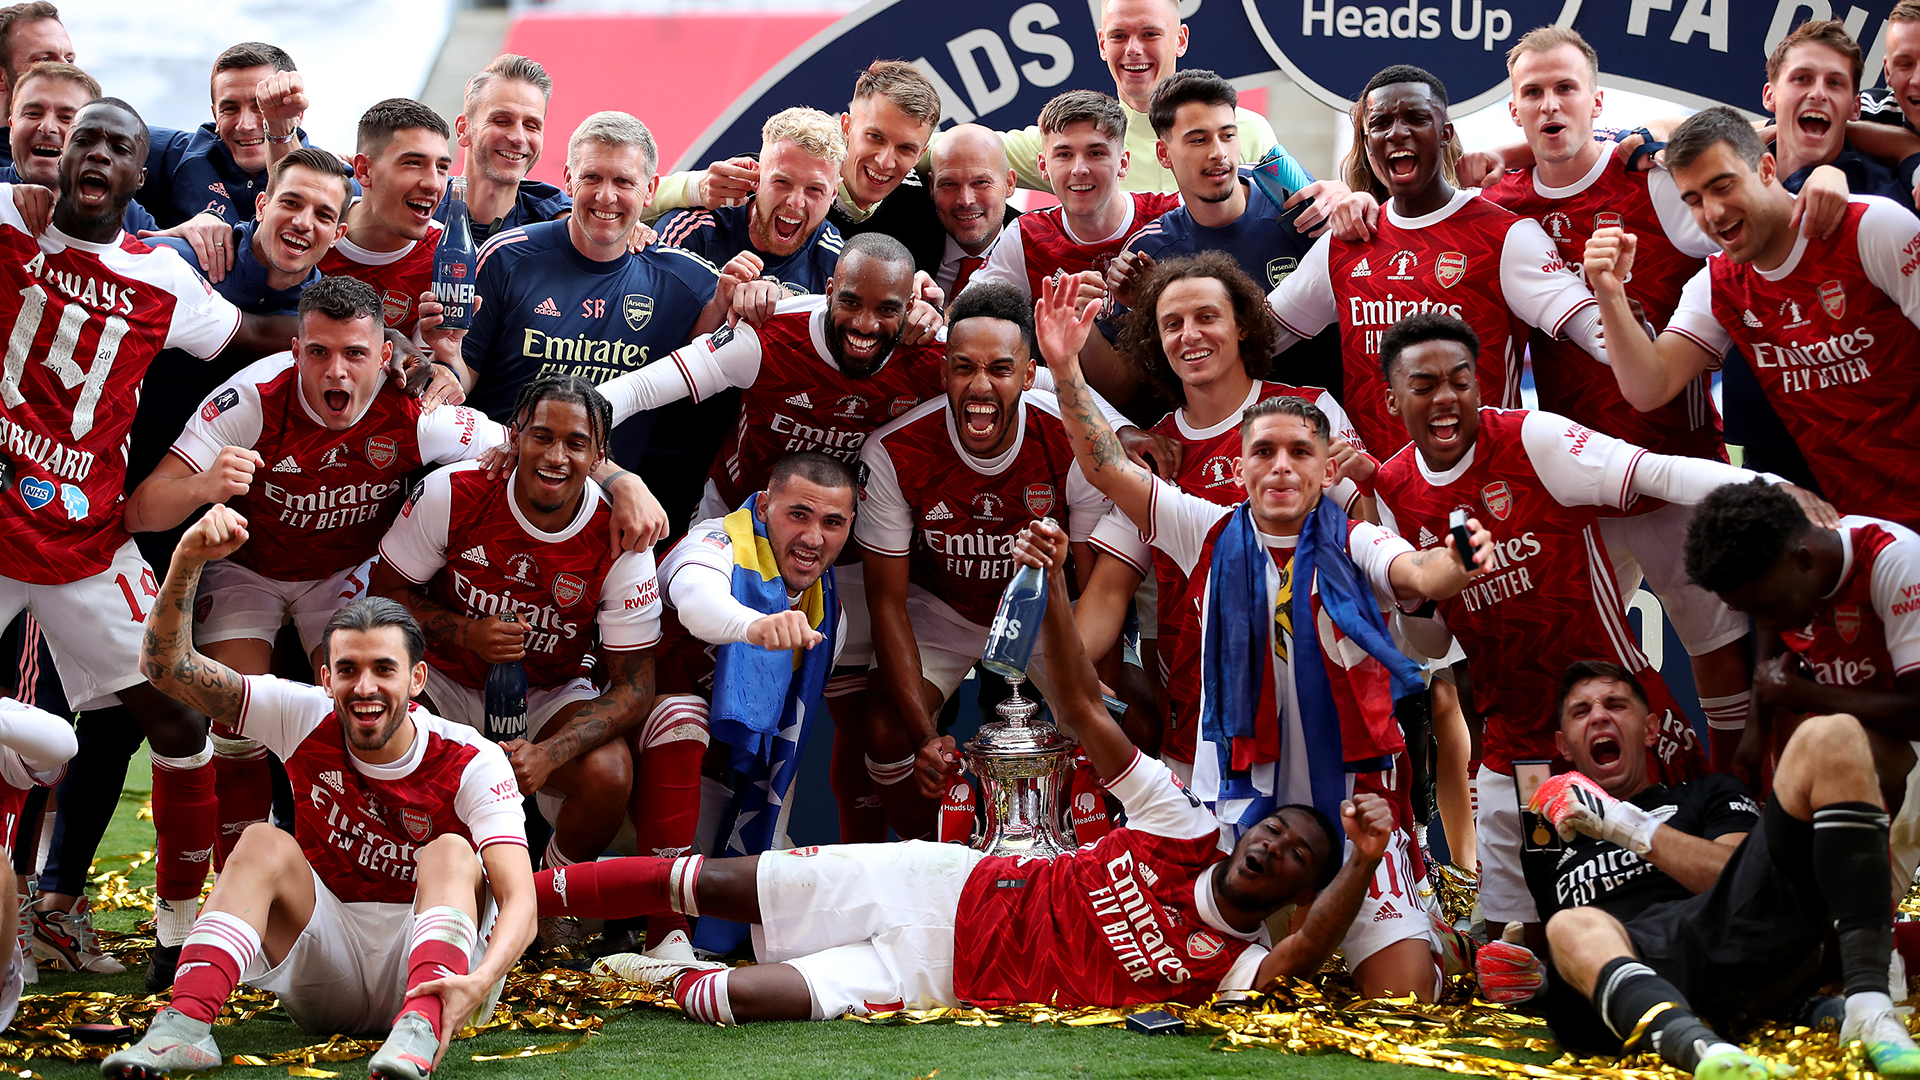 FA Cup final score: Arsenal takes down Chelsea for record 14th ...